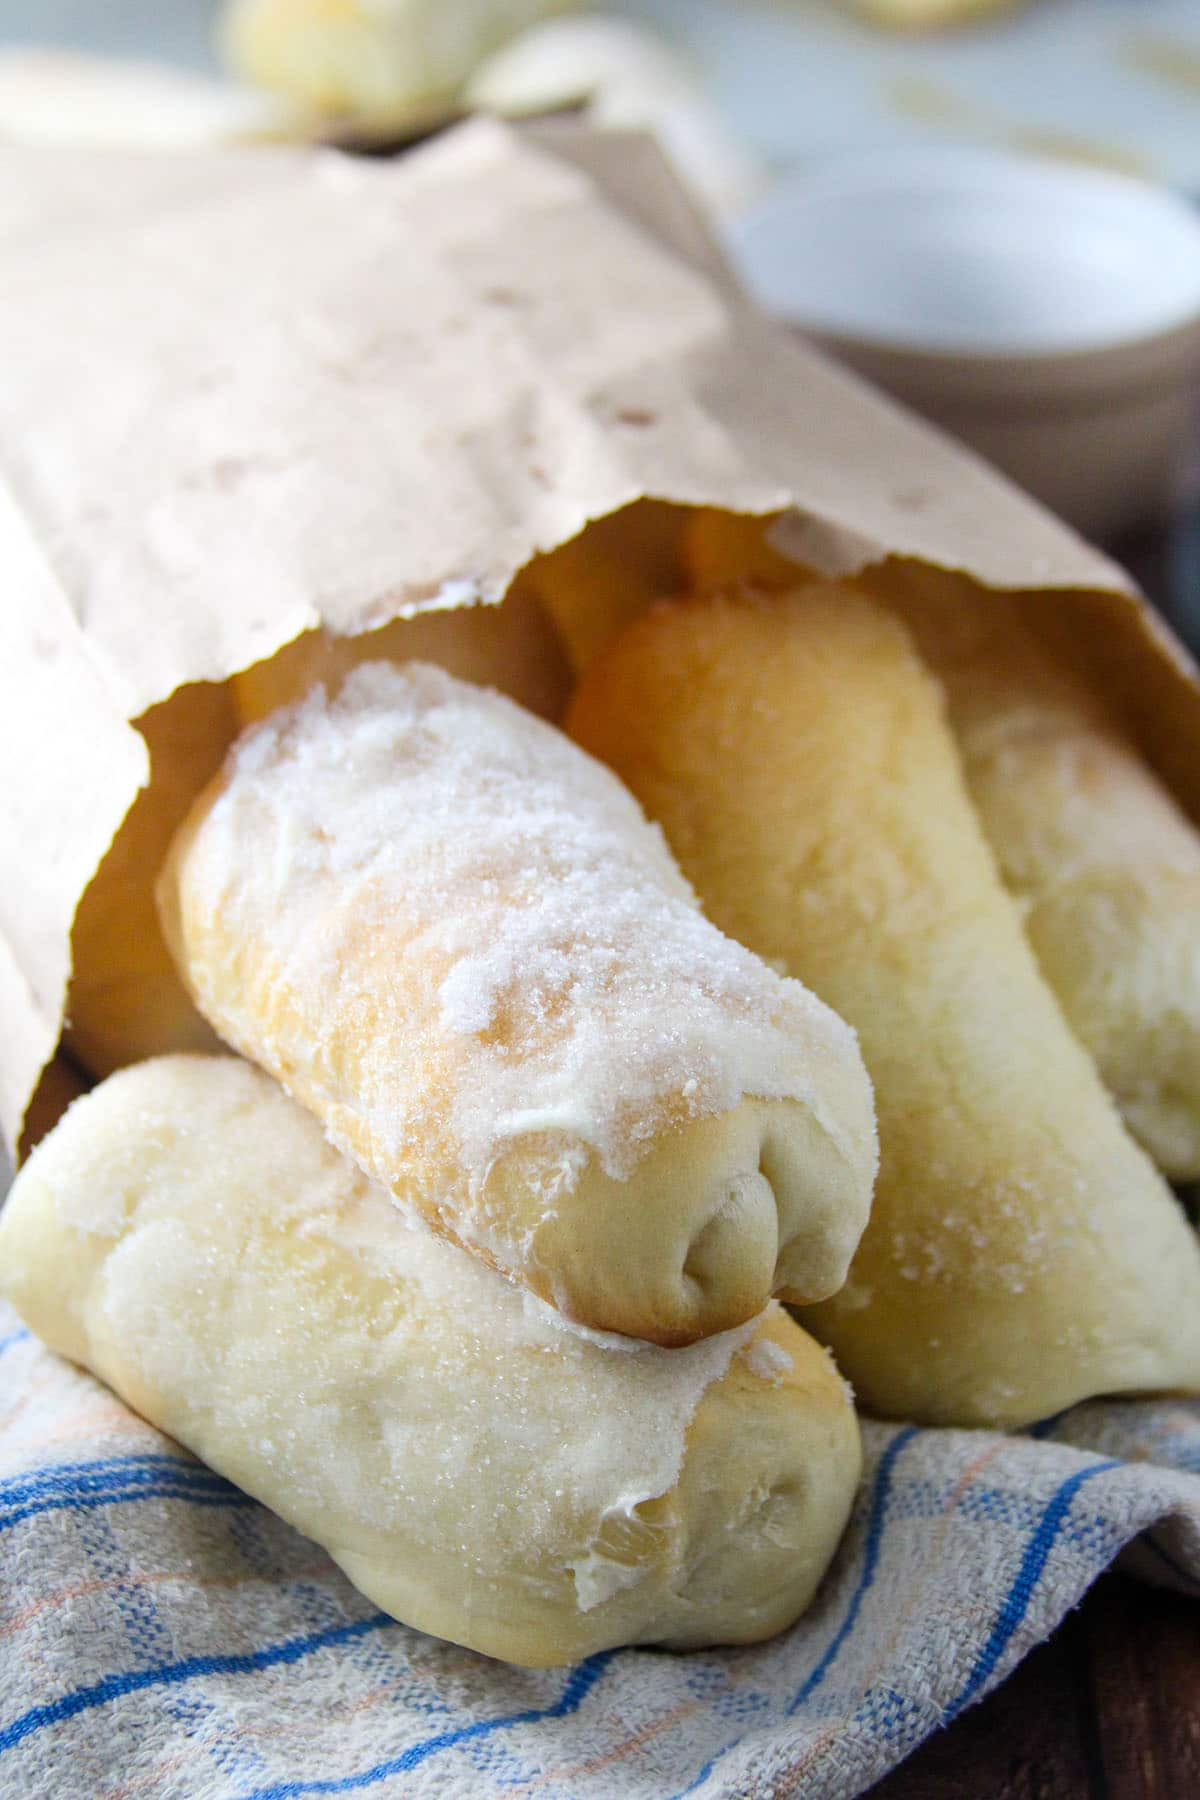 Sweet cheese rolls peeking thru the brown bakery bag.